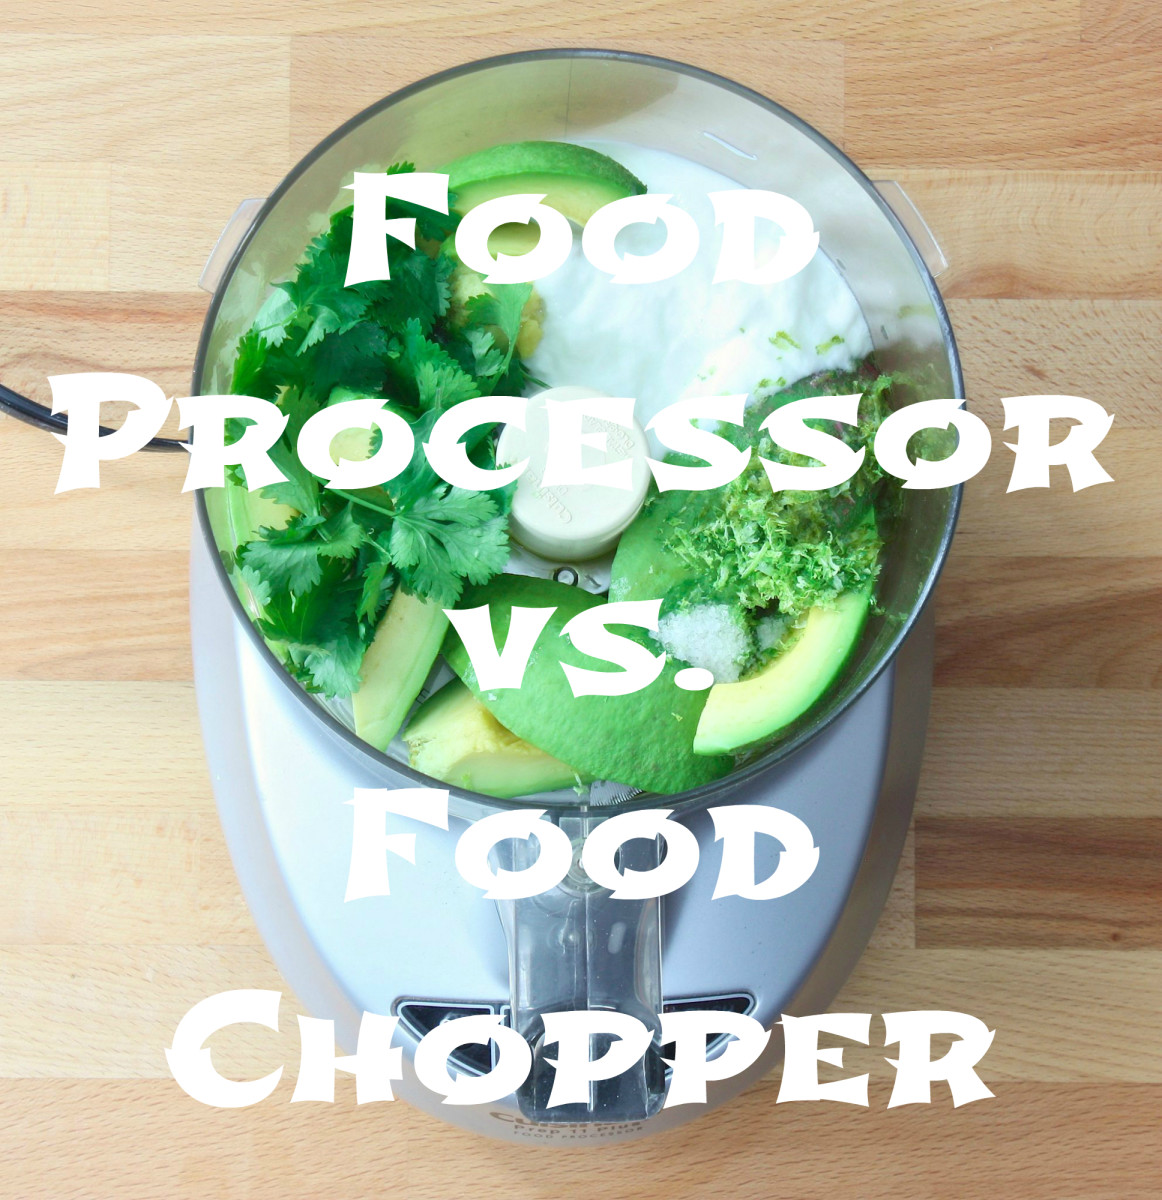 Food Processor vs. Food Chopper: What's the Difference?